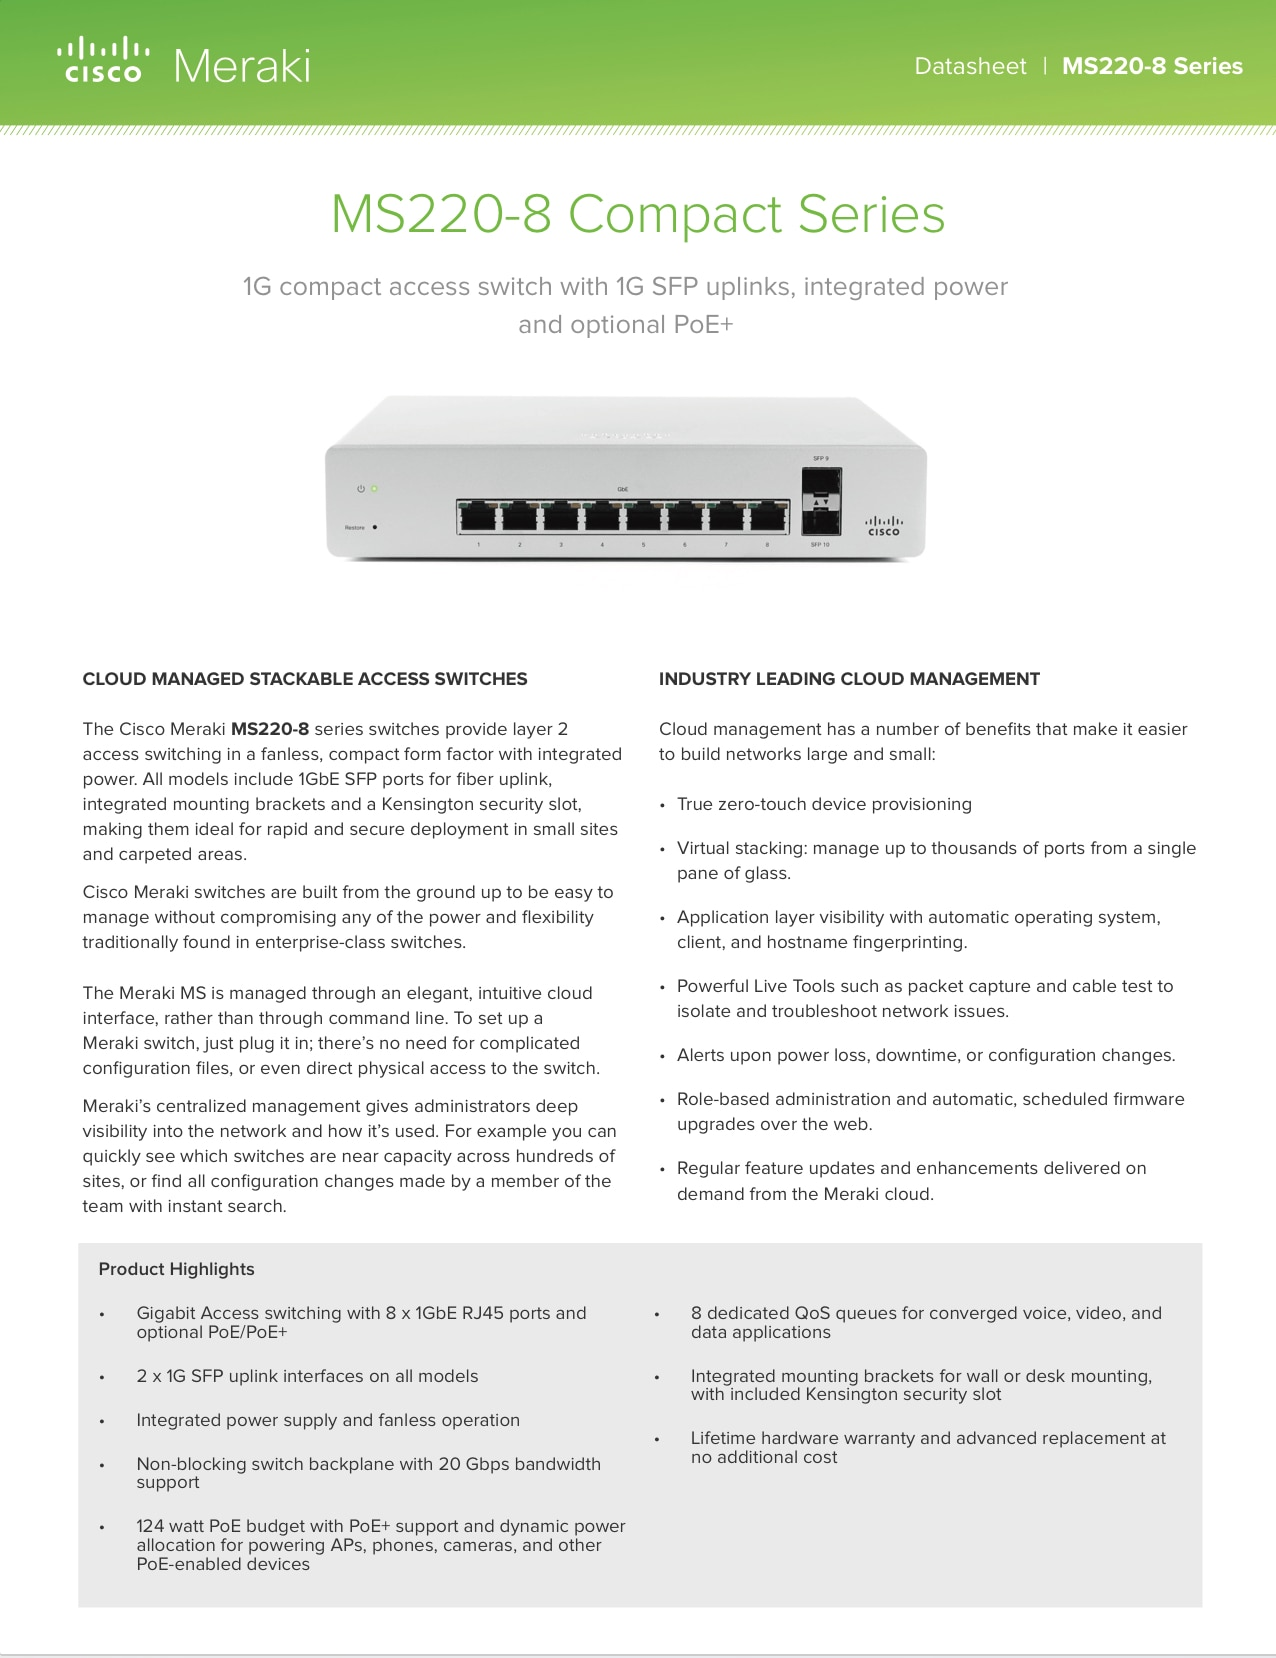 MS220 Compact Series Datasheet (Archived)